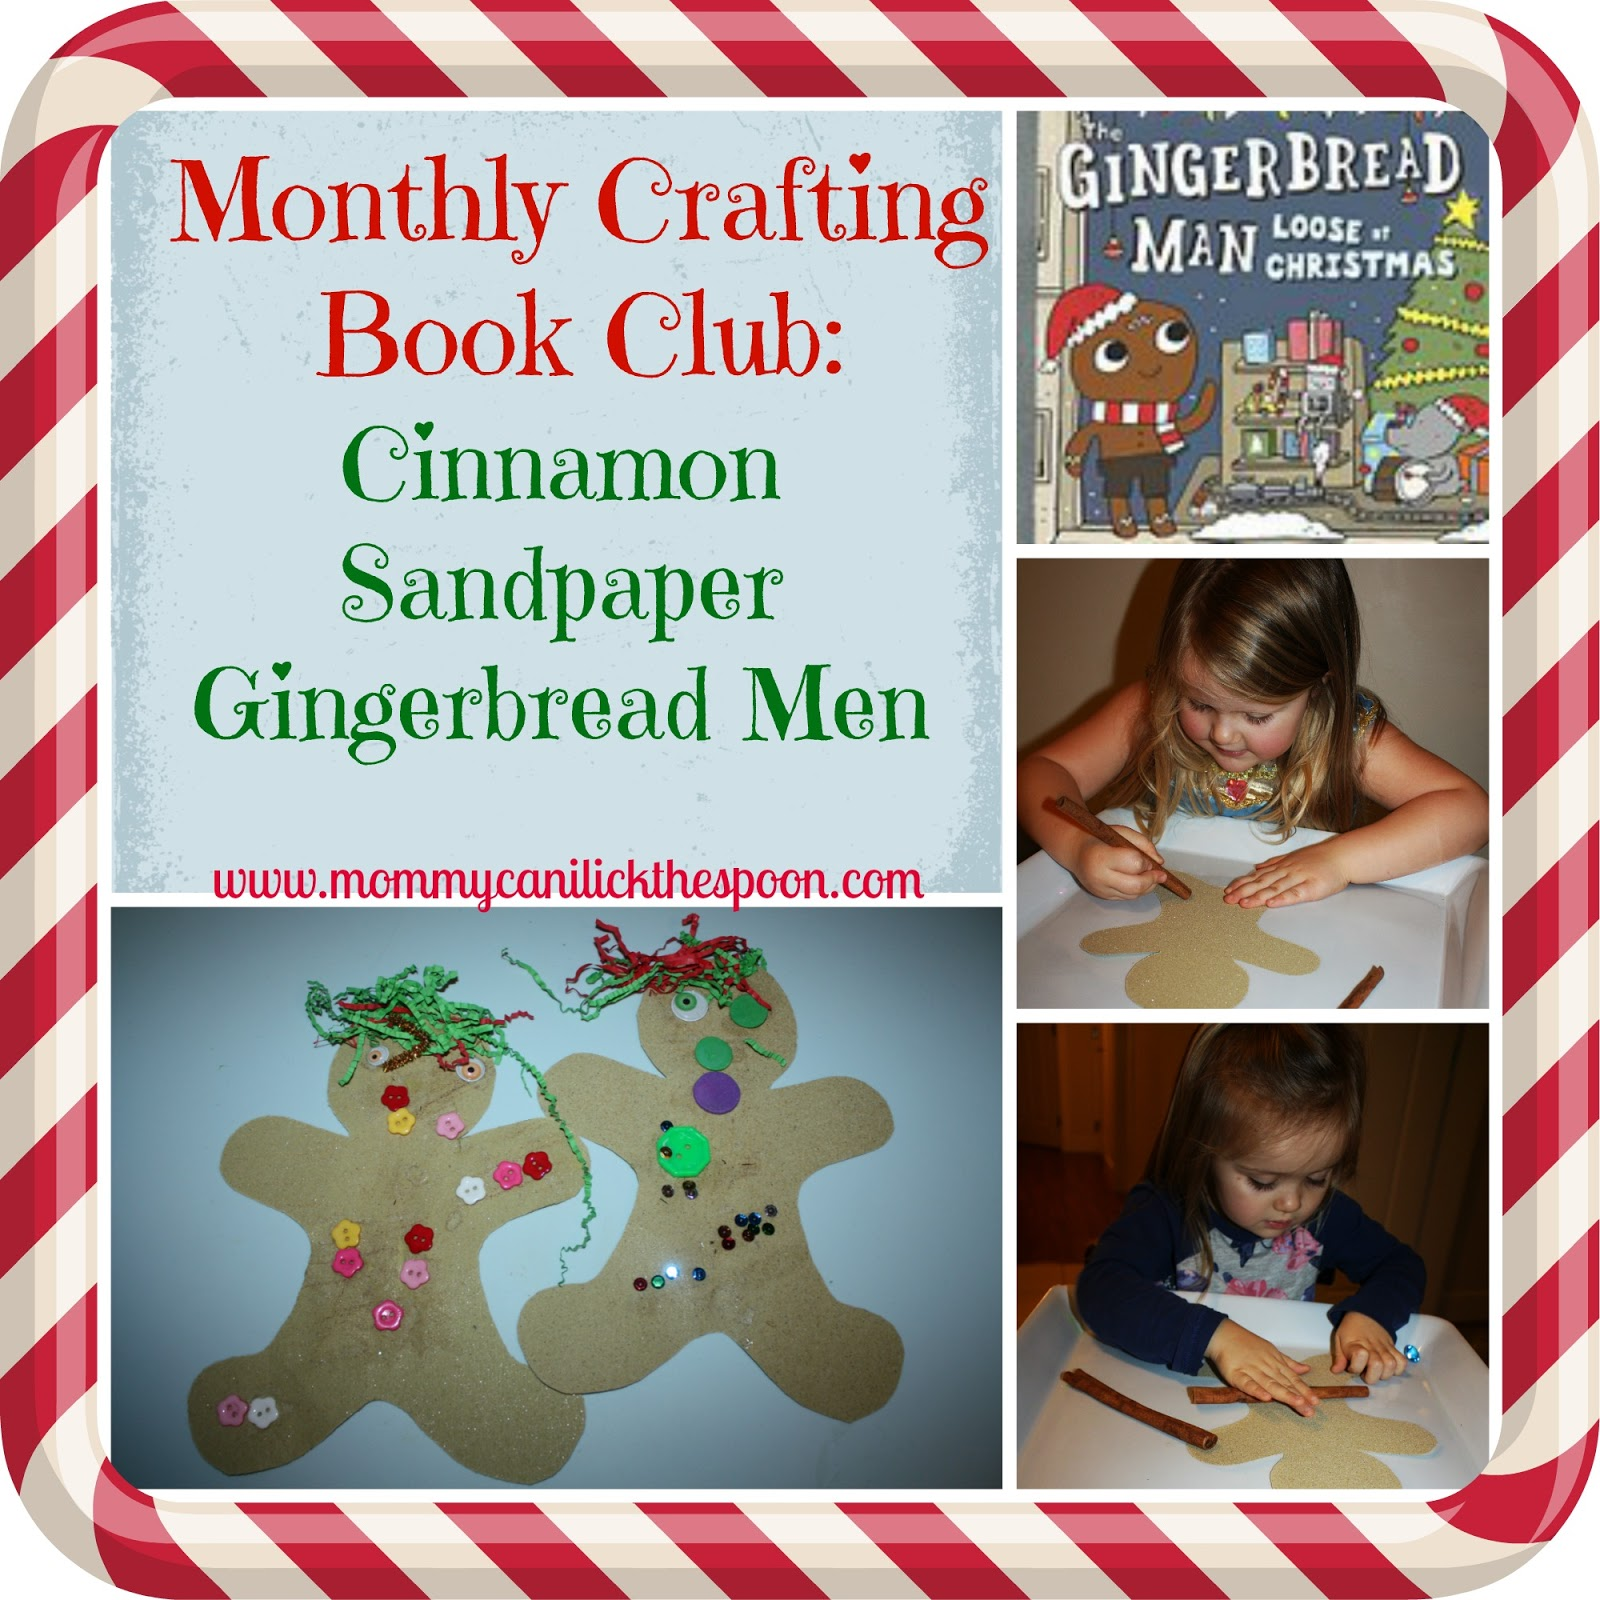 Mommy, Can I Lick the Spoon?: Monthly Crafting Book Club